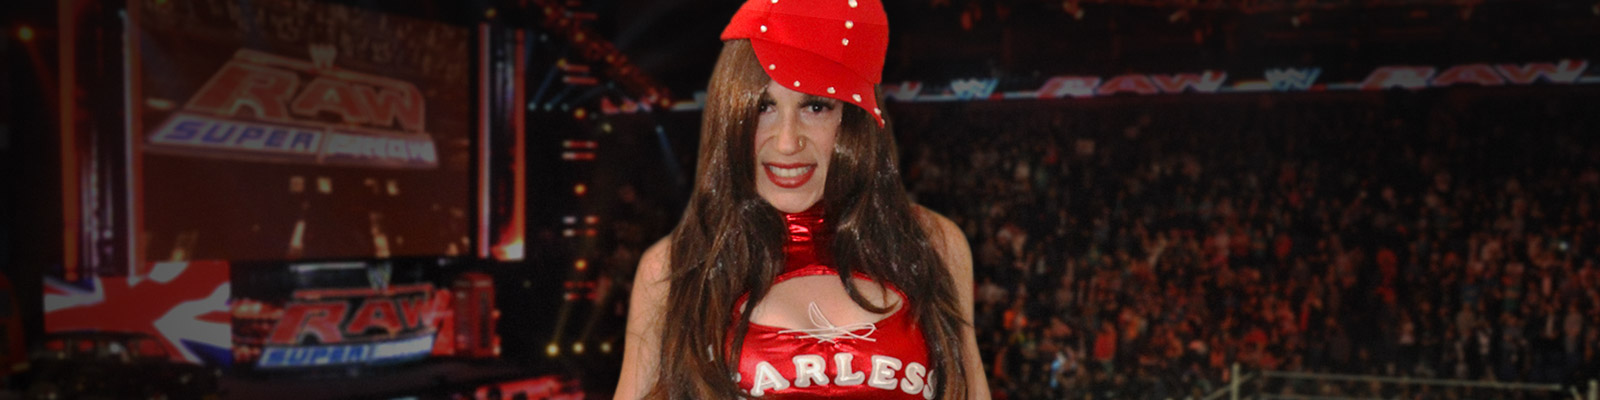 DIY Nikki Bella Costume